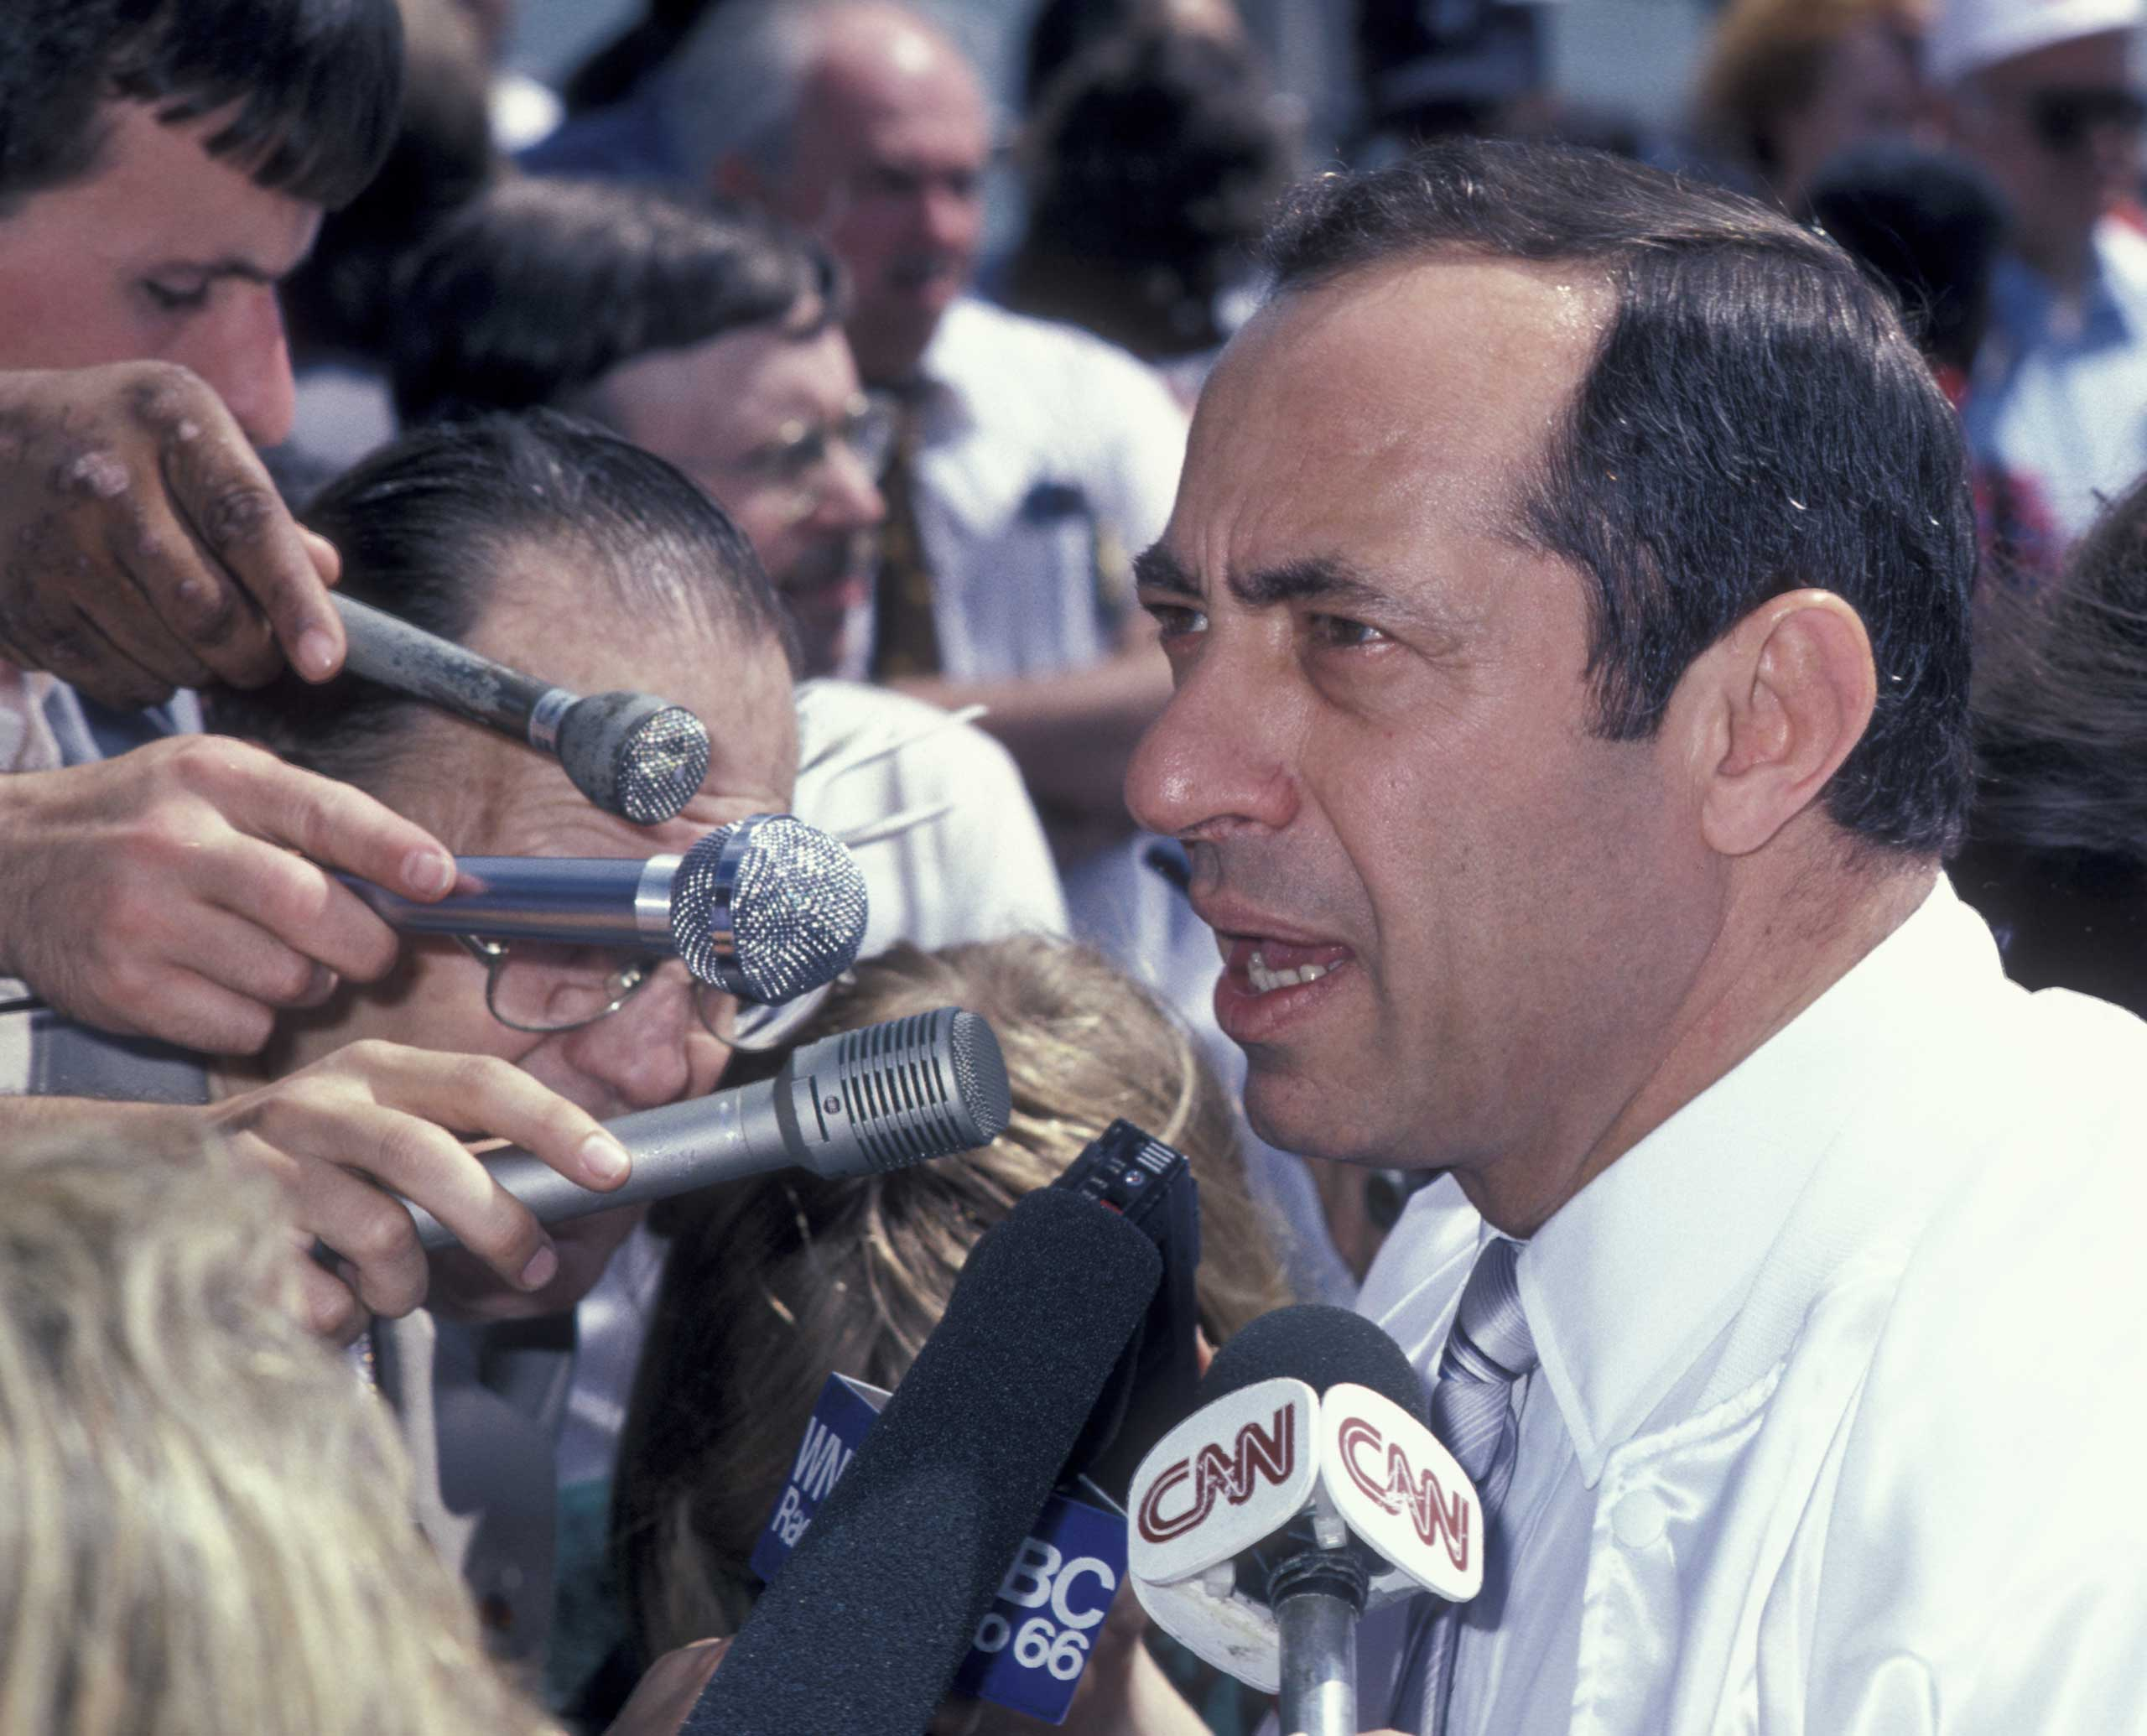 Mario Cuomo attends Hands Across America Benefit in Los Angeles on May 25, 1986.